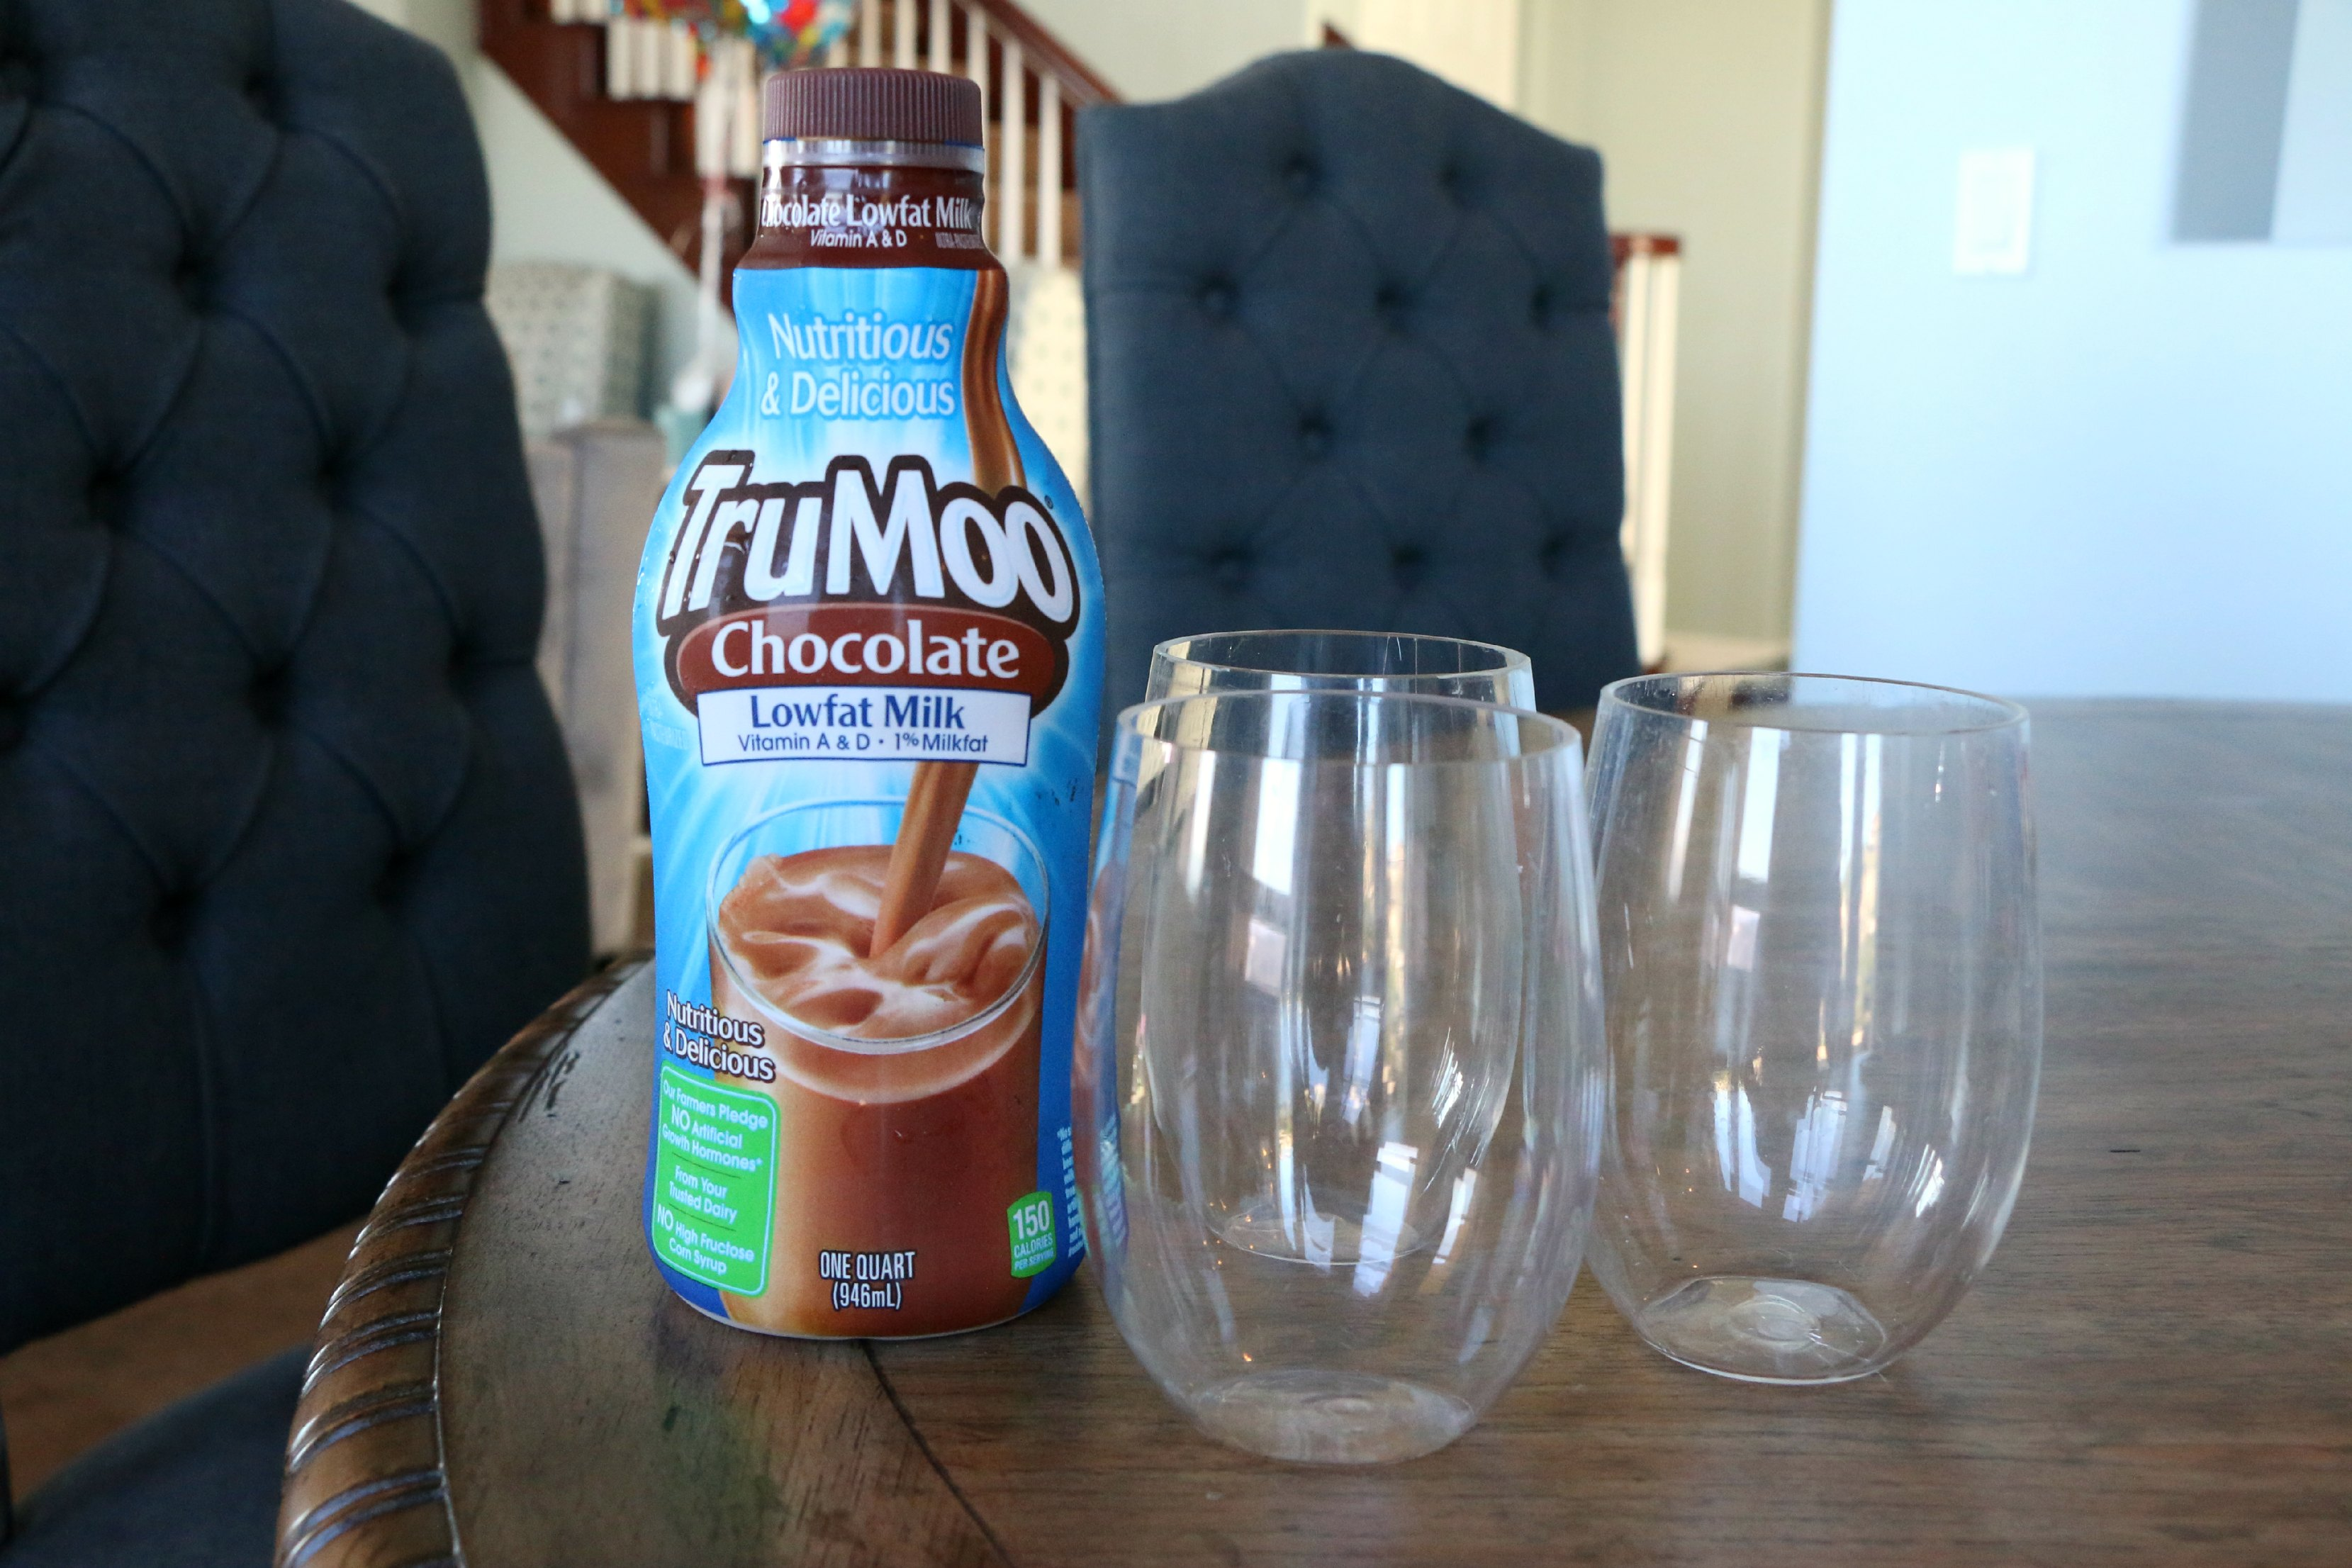 trumoo summertime drinks